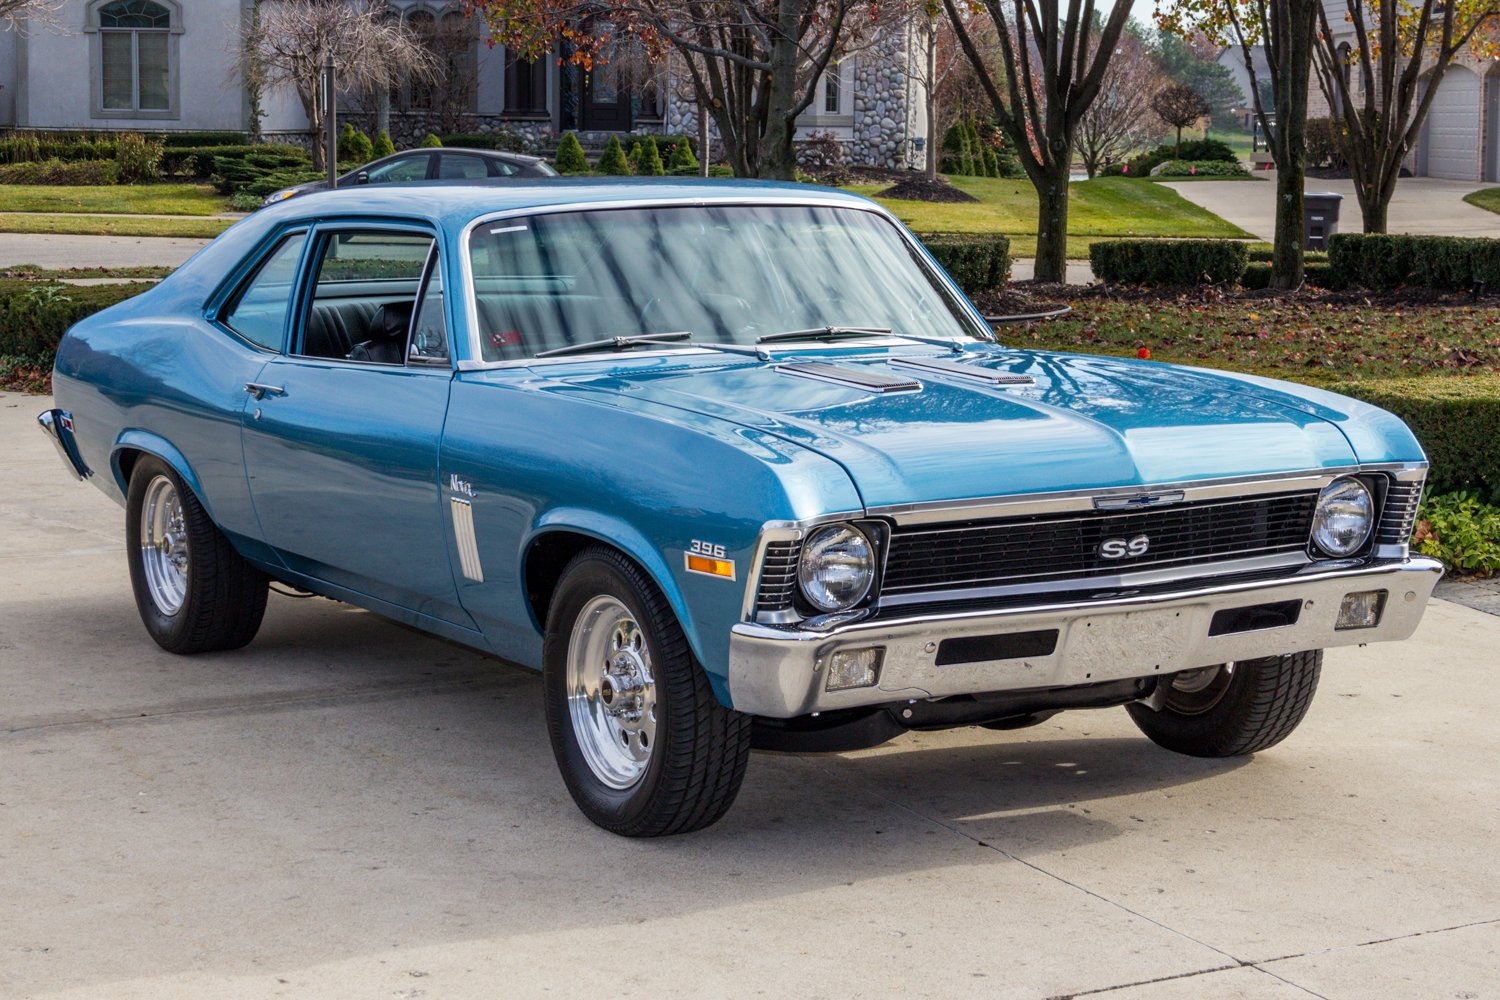 1971 Chevrolet Nova | Classic Cars for Sale Michigan: Muscle